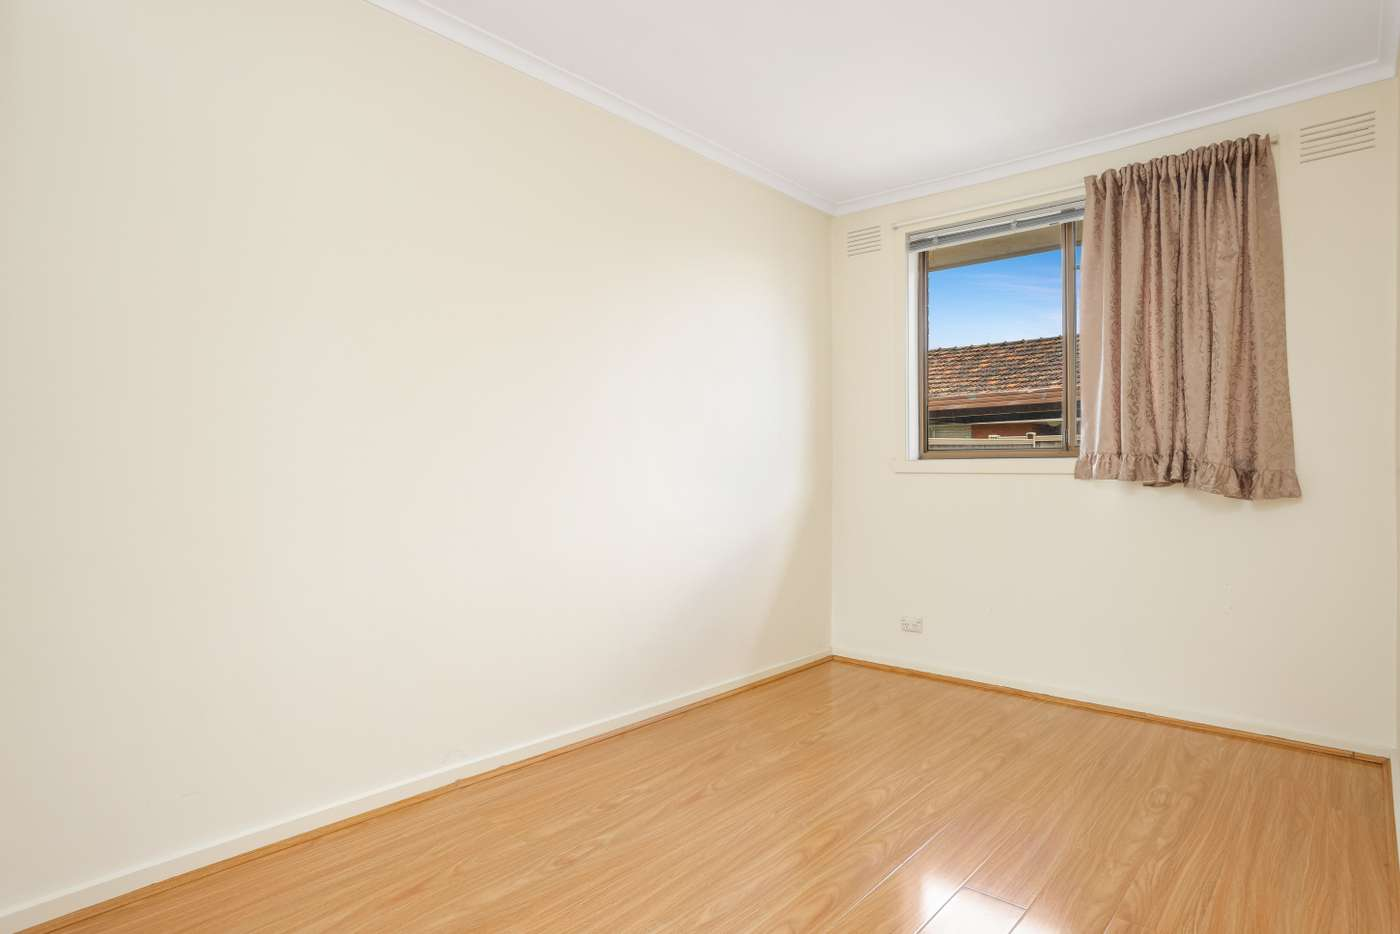 Sixth view of Homely unit listing, 1/33 Prospect Street, Glenroy VIC 3046